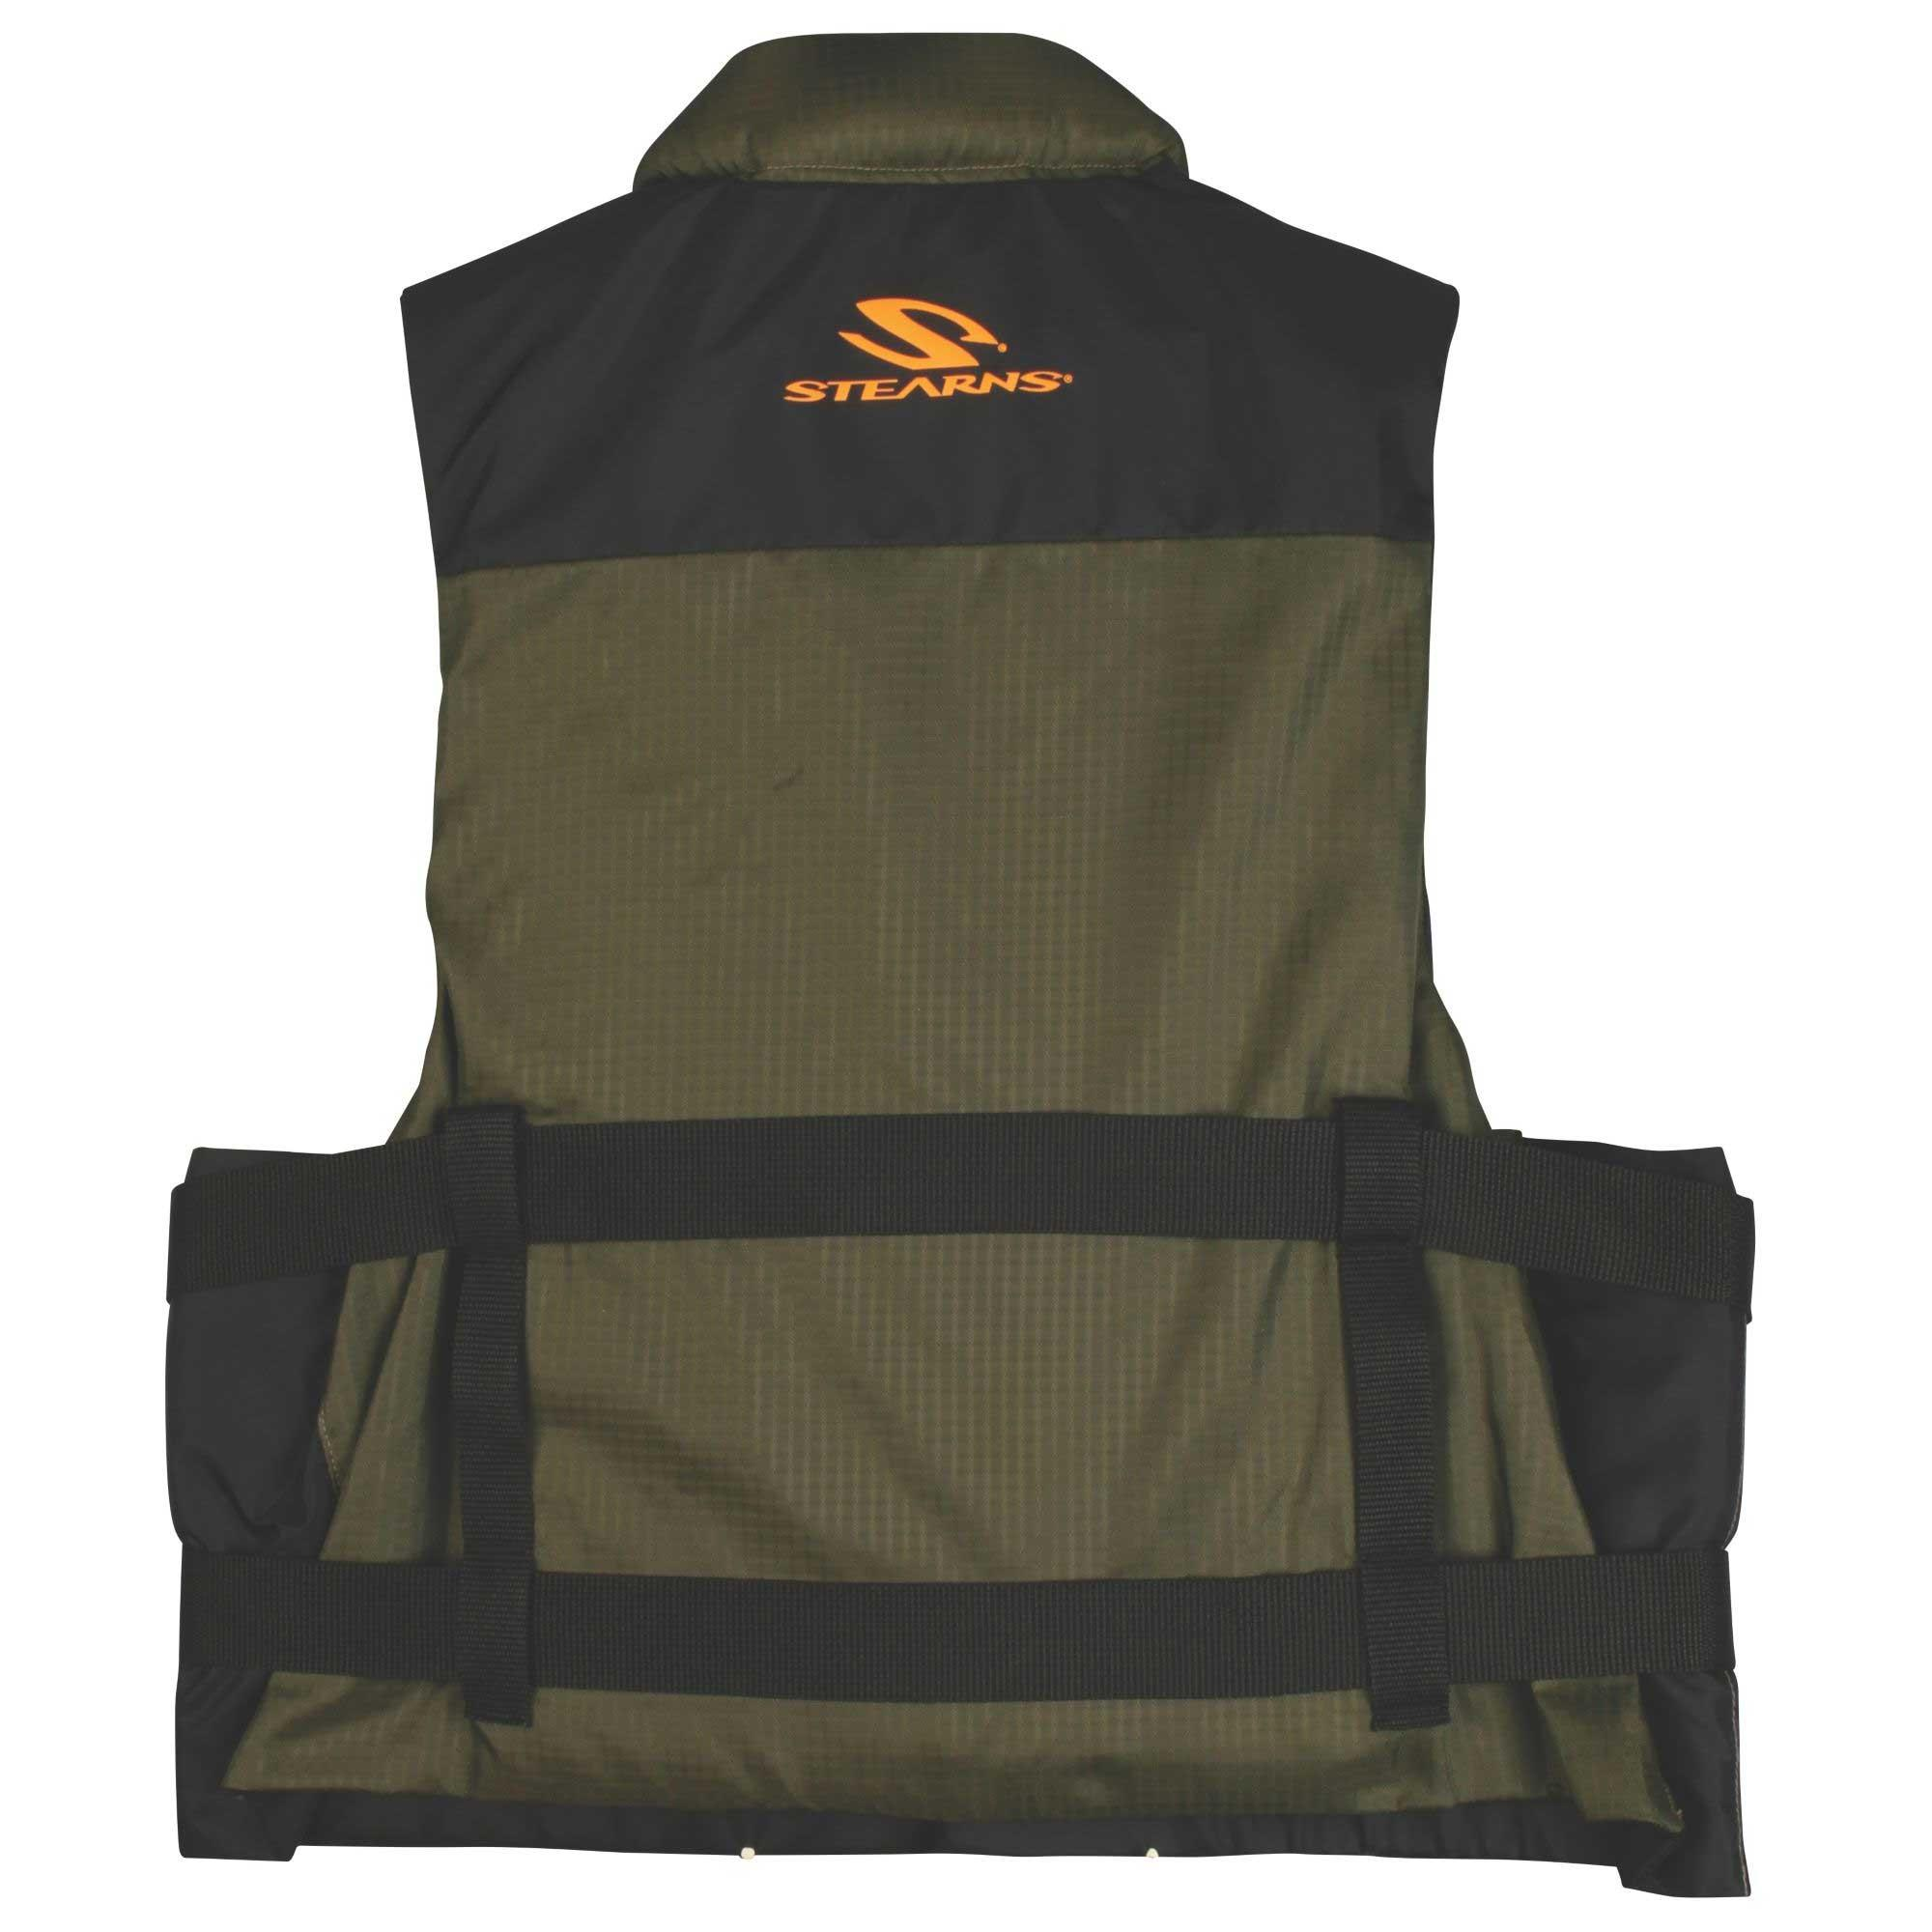 Stearns Competitor Series Fishing Vest_2.jpg